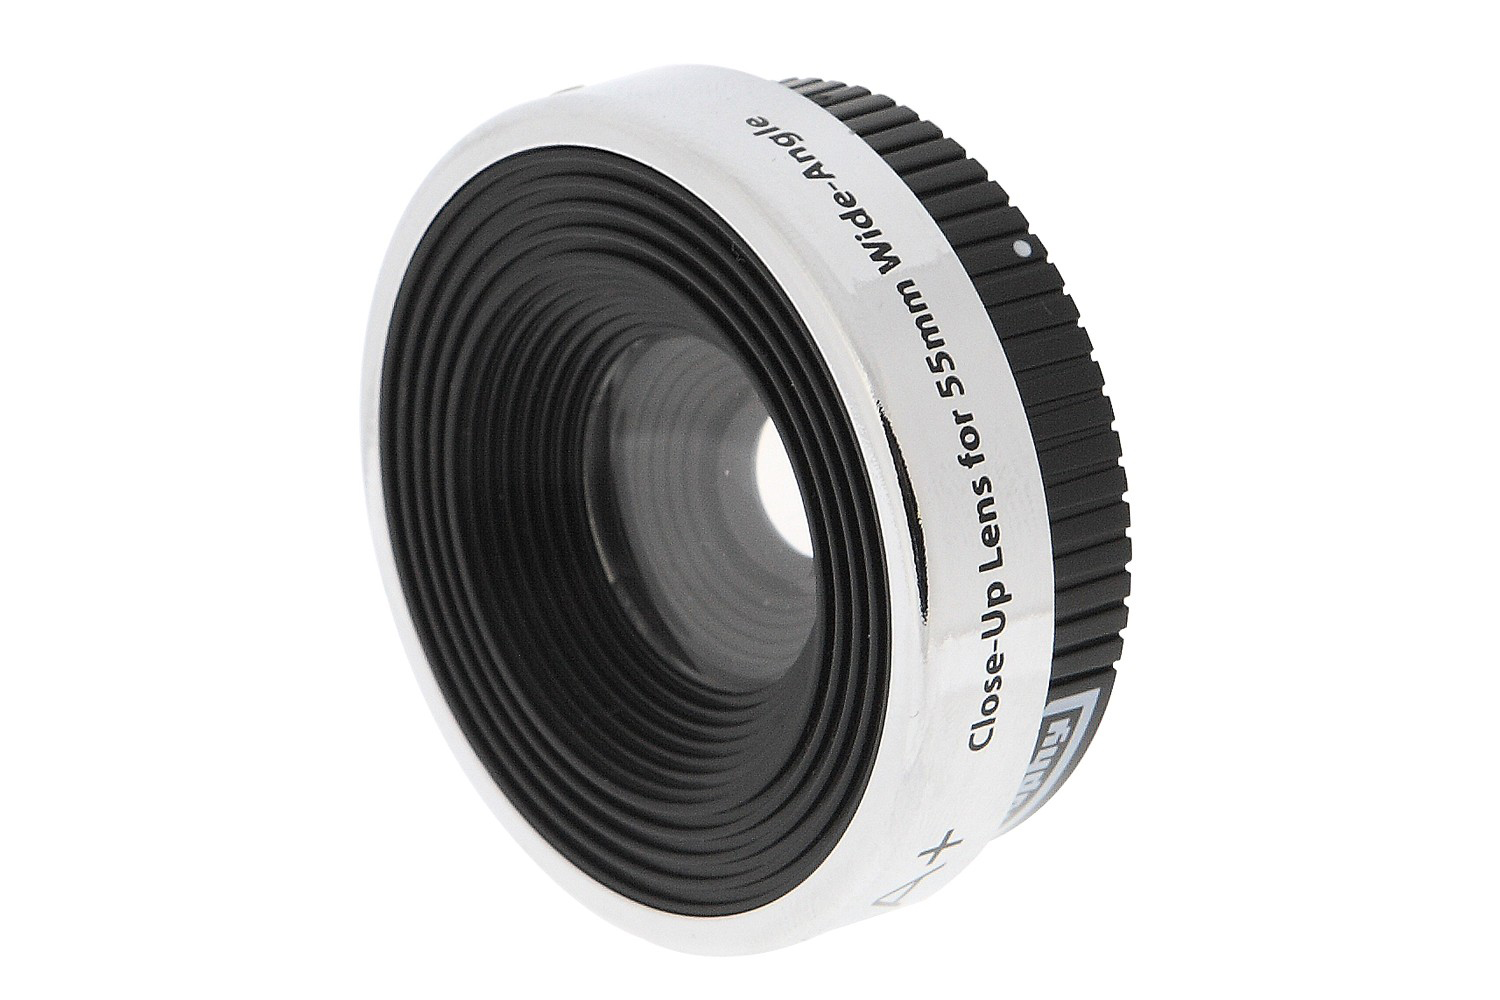 55mm Wide Angle Lens  Close-Up Lens for Diana+